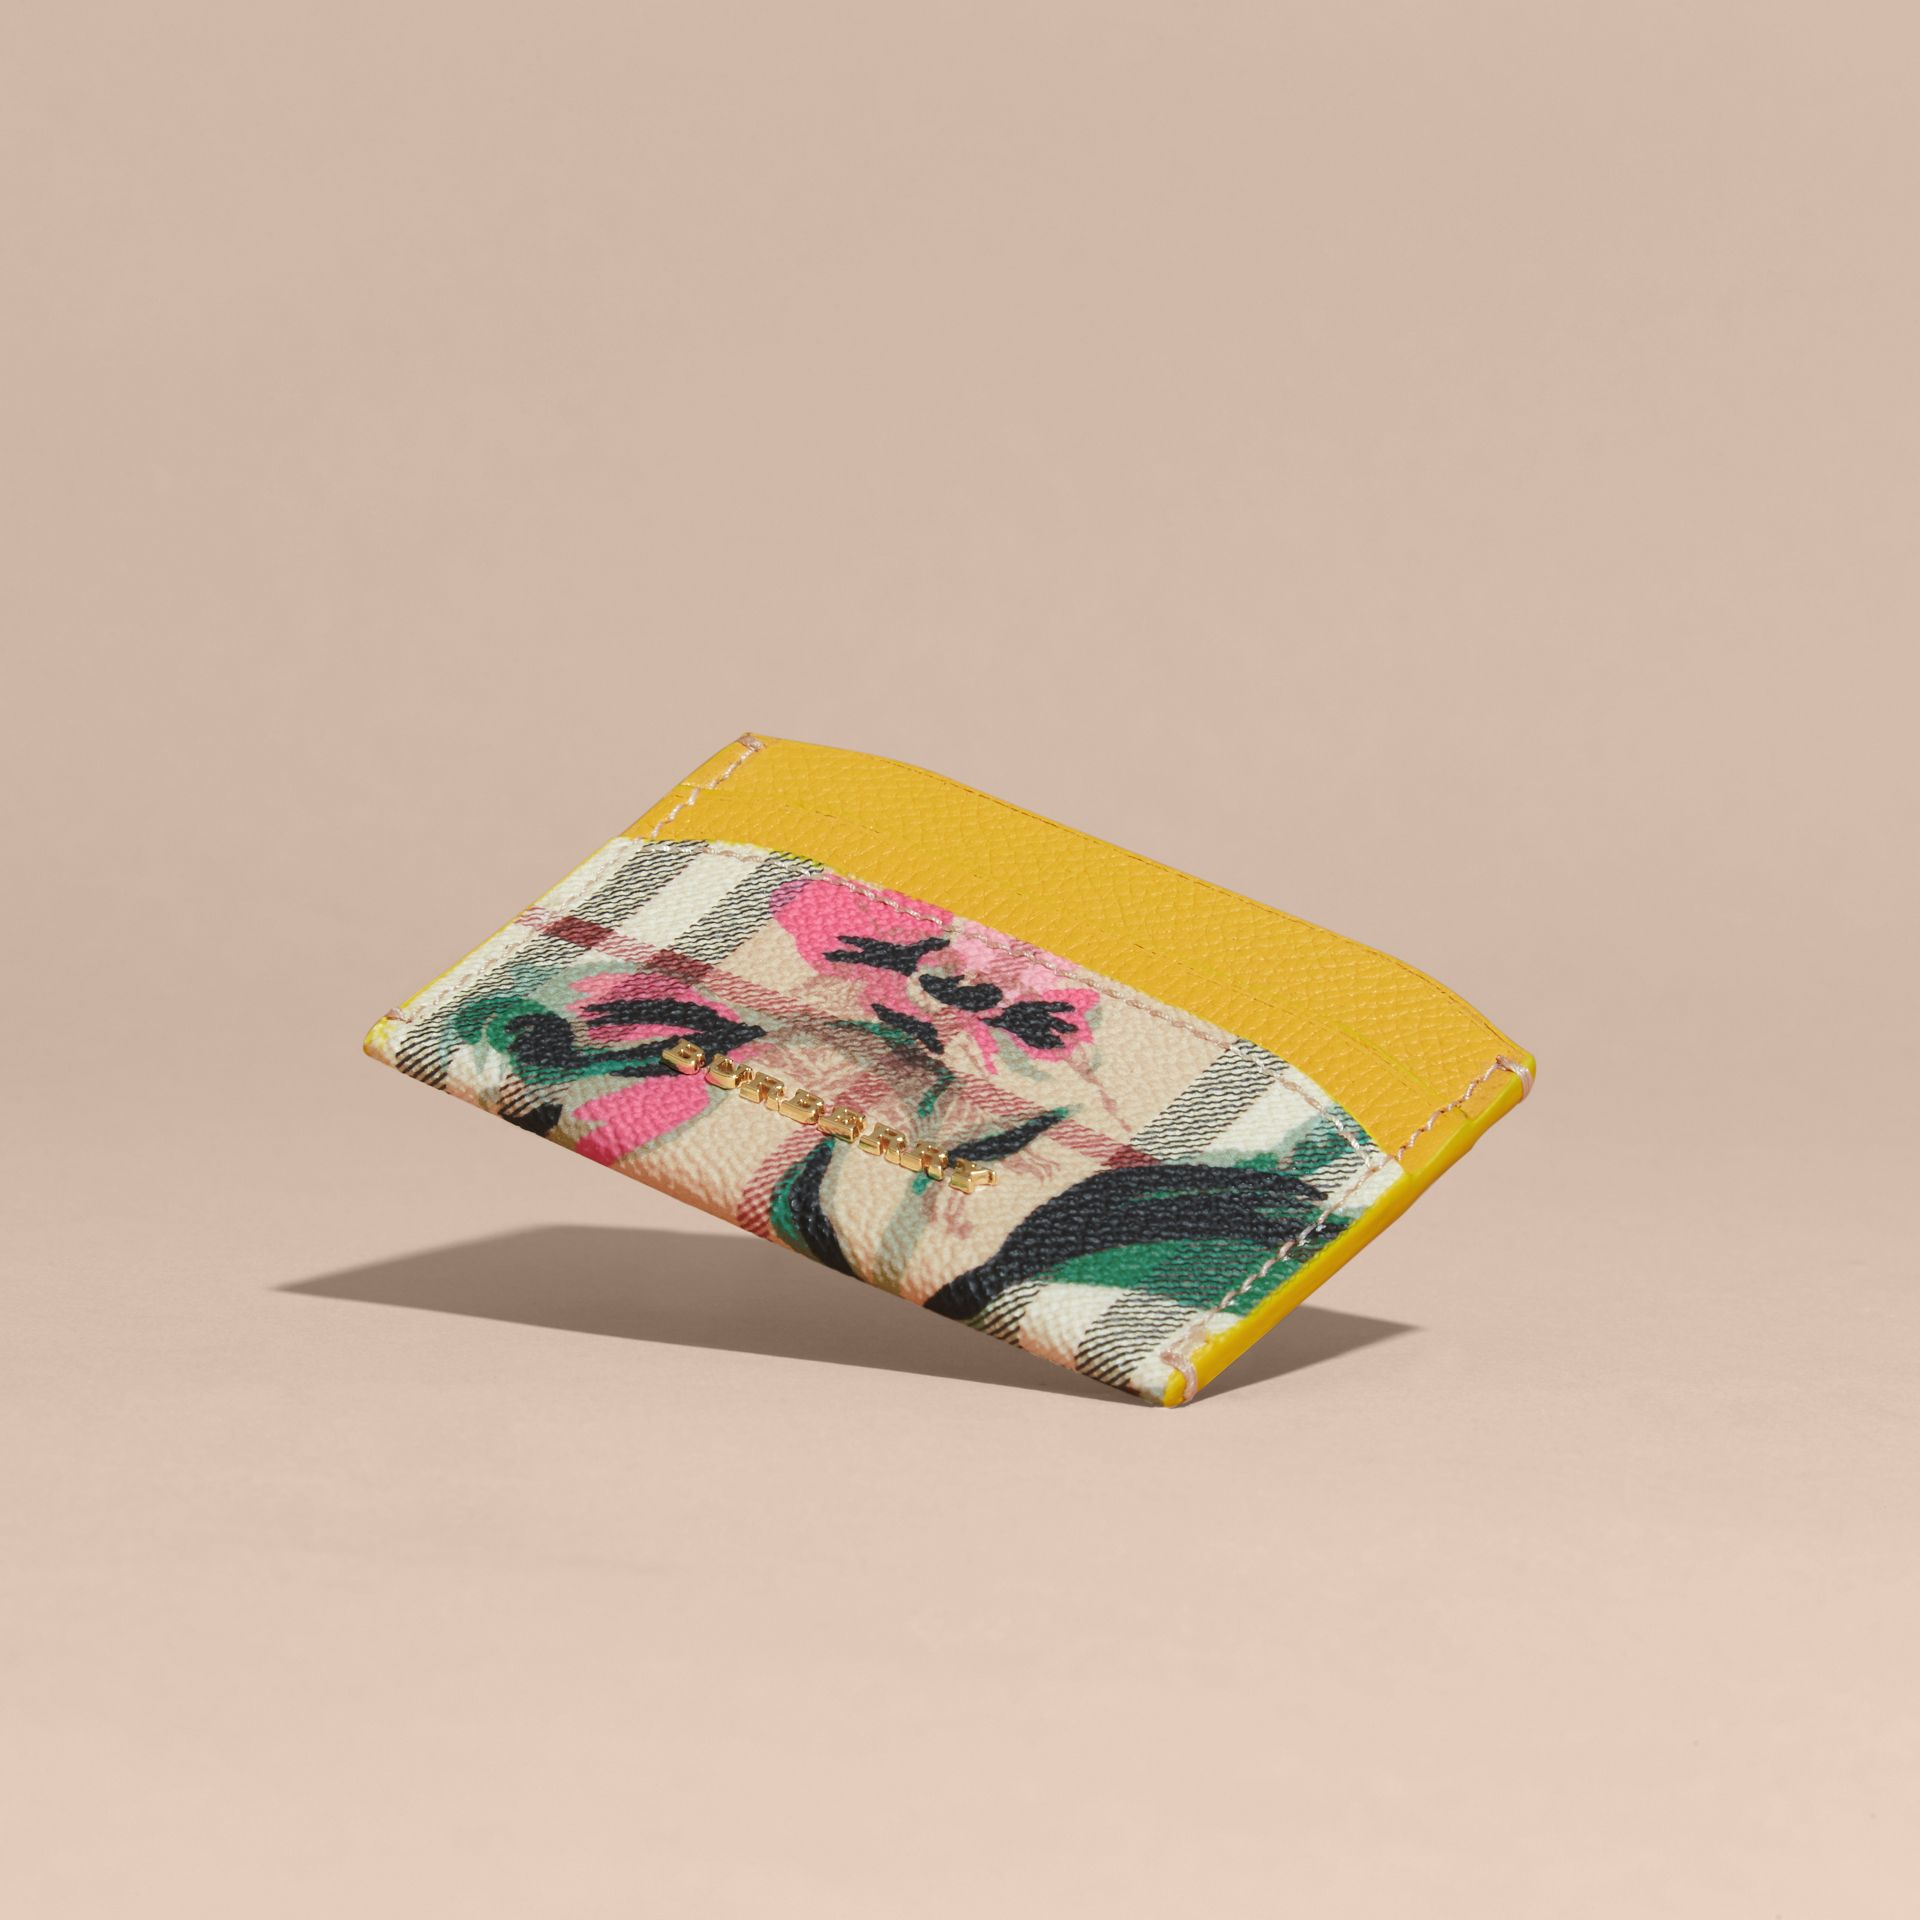 Peony Rose Print Haymarket Check and Leather Card Case in Larch Yellow/emerald Green - gallery image 3